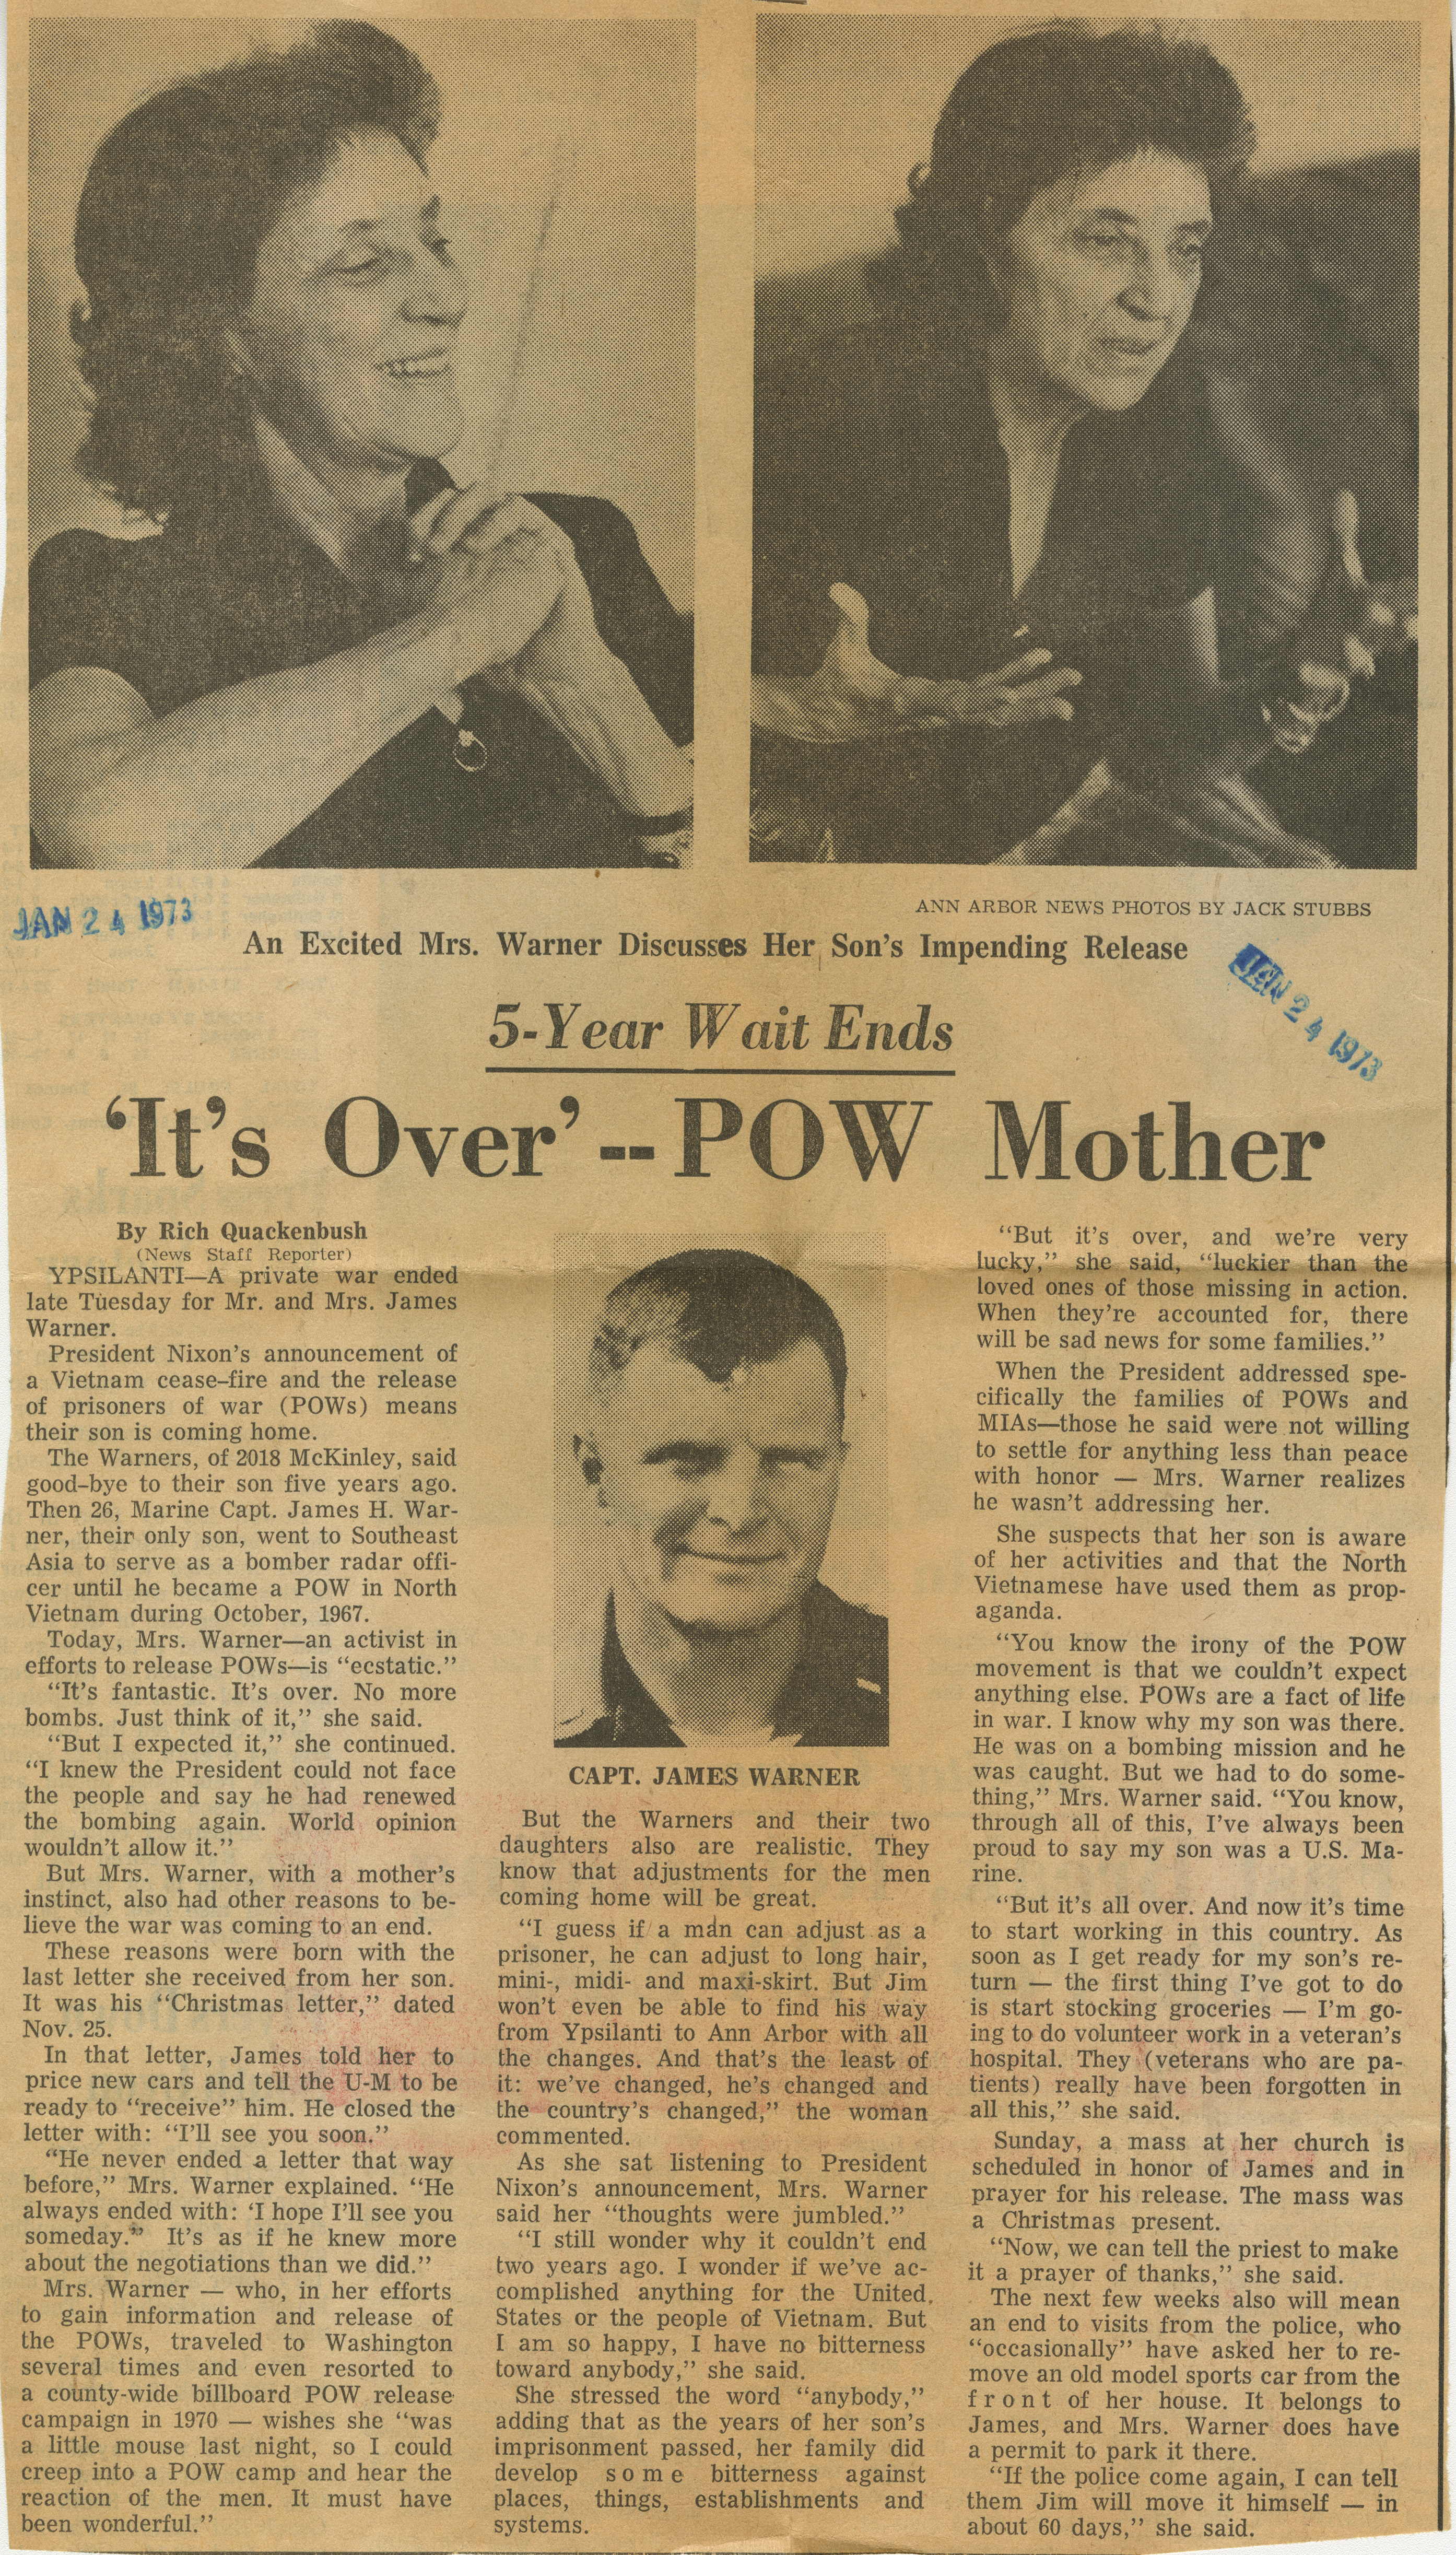 'It's Over' -- POW Mother image